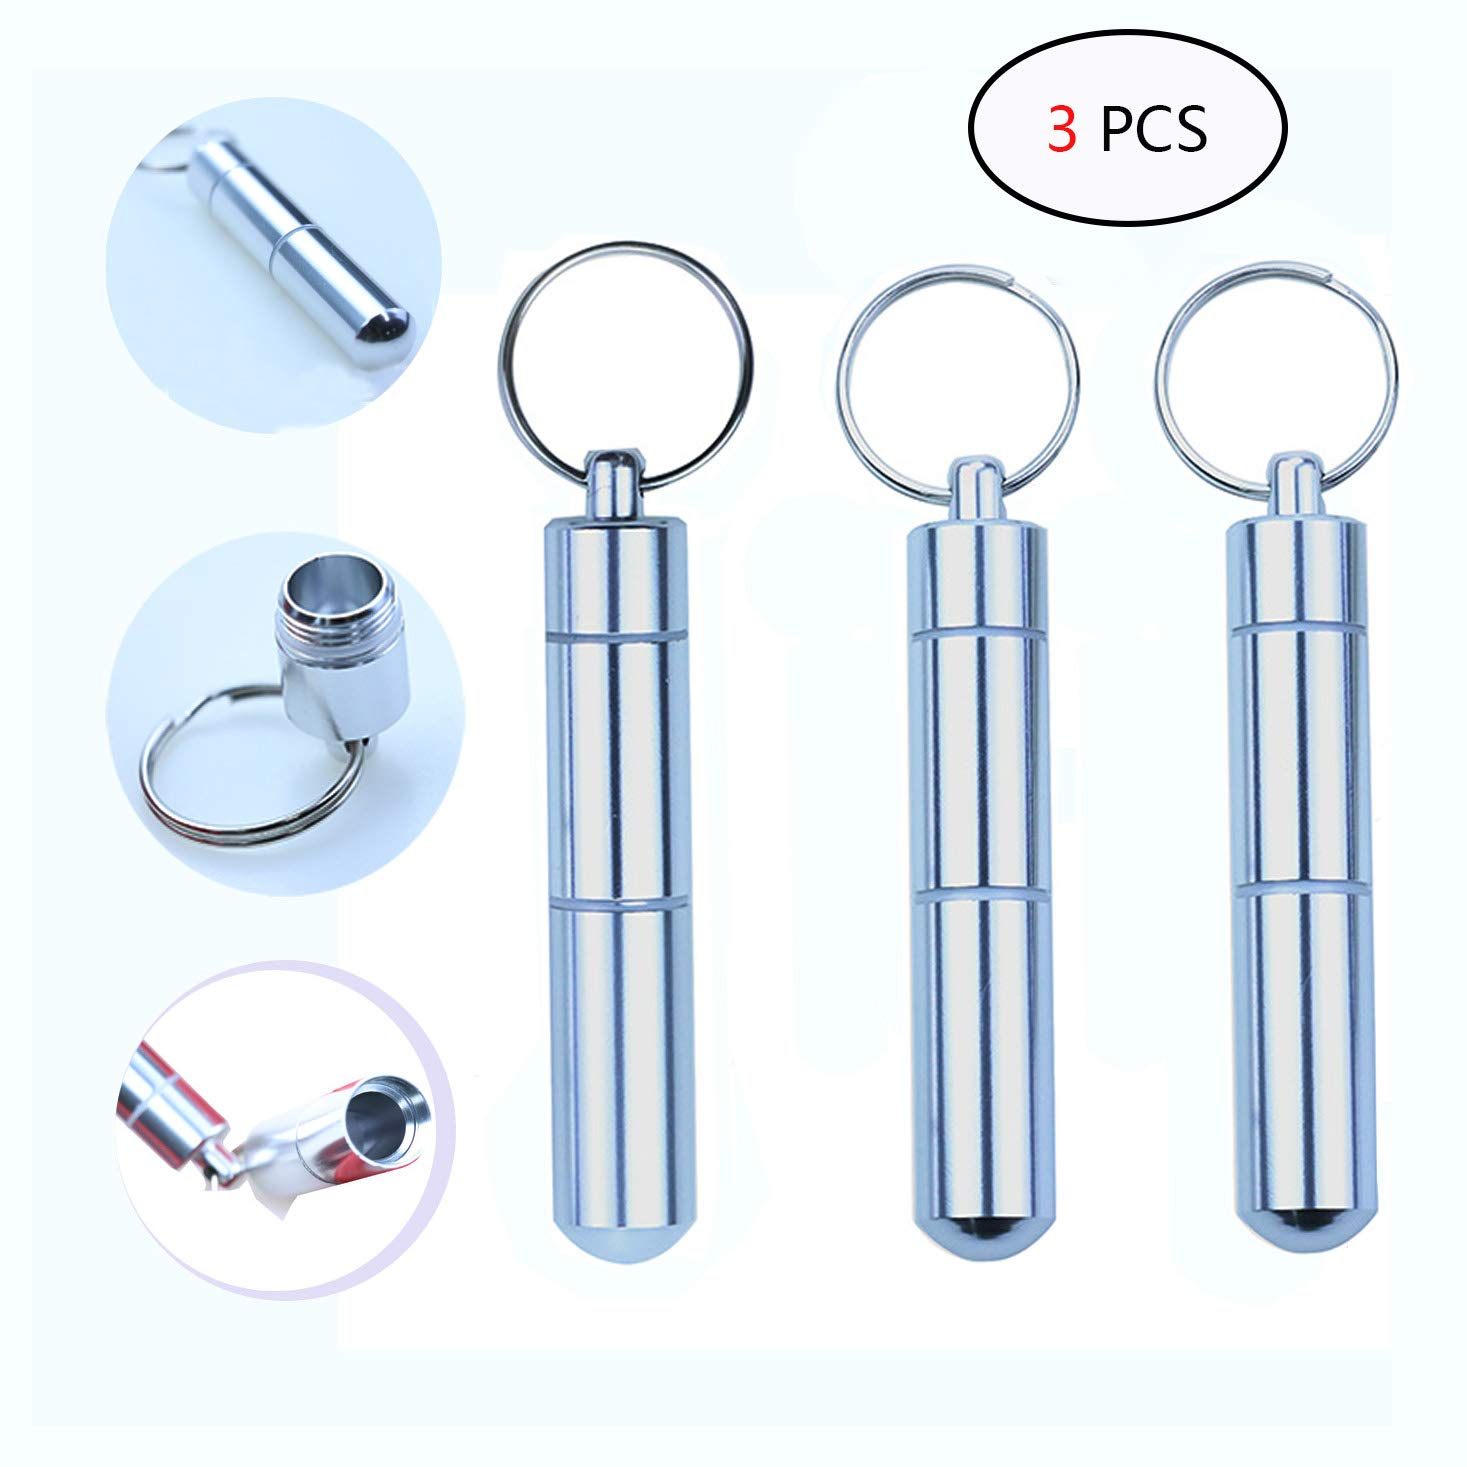 3.07 x 0.55 Inch Portable Toothpick Pocket with Wire Keychain Cable Heatoe 3 Pcs Aluminum Toothpick Holder Dustproof and waterproof Toothpick Case